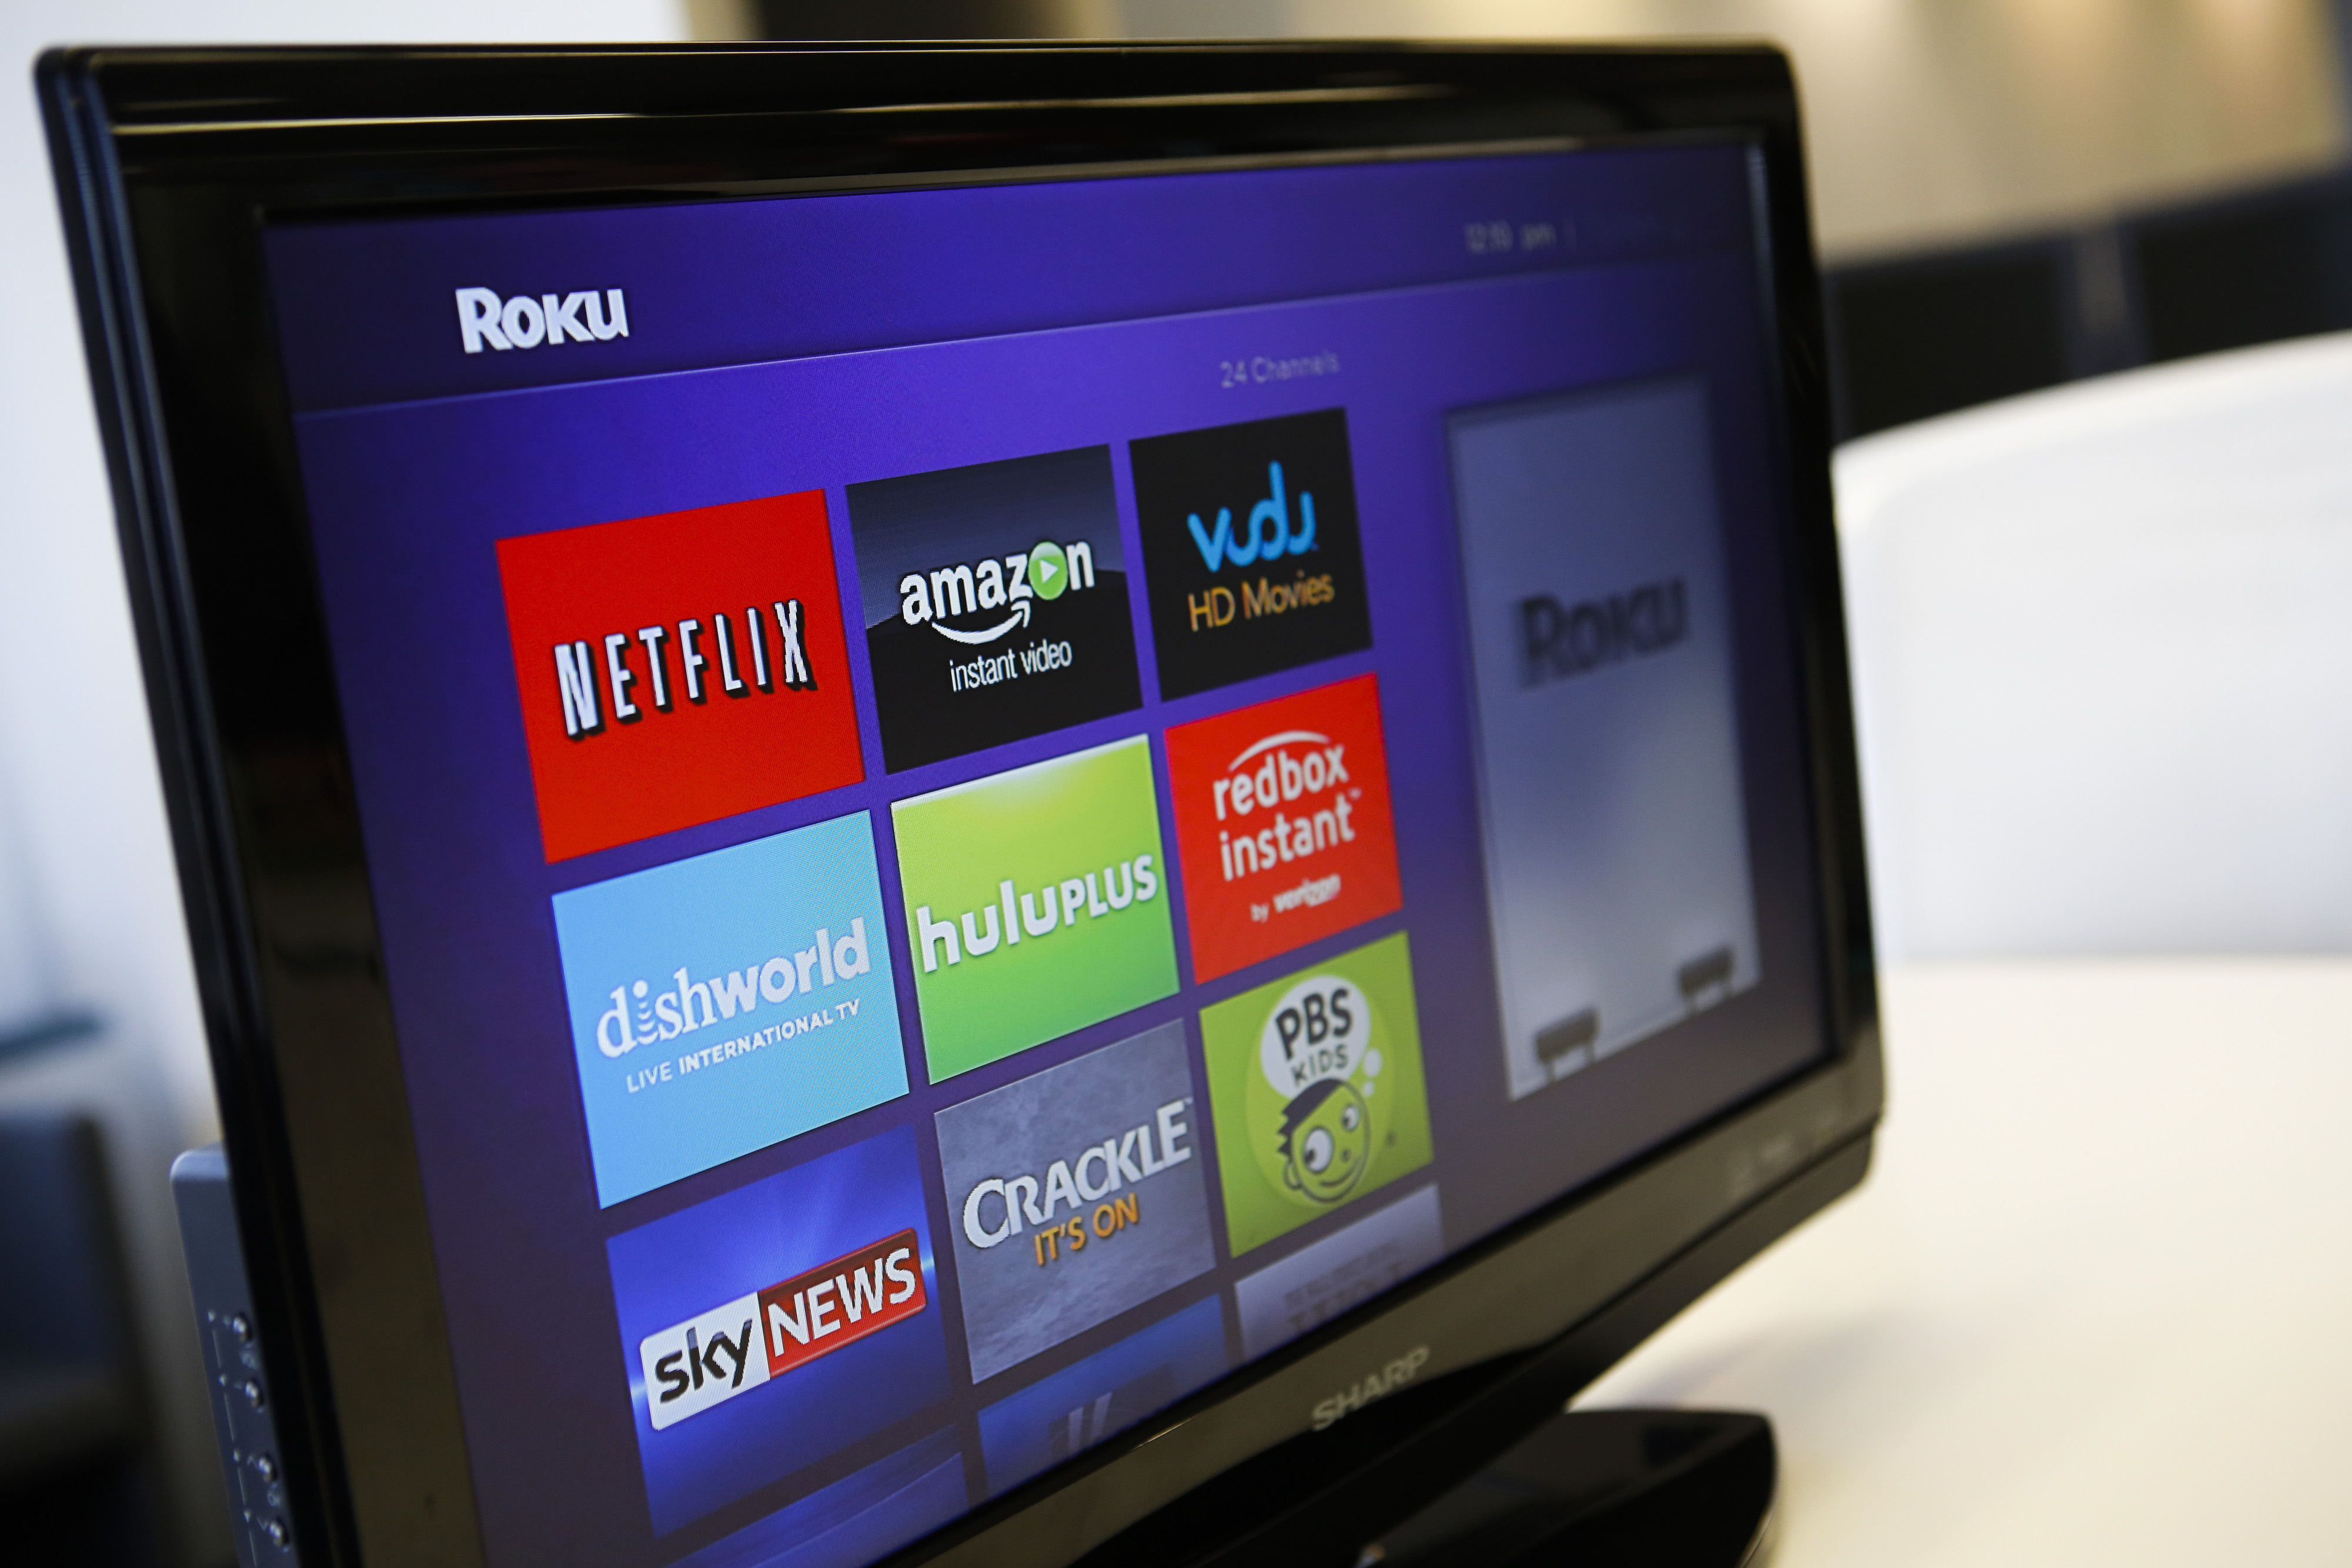 The Roku 3 television streaming player menu screen featuring Netflix, Amazon, Vudu, Hulu, and Redbox Instant is shown on a television in Los Angeles, California, U.S. Photo by Patrick T. Fallon/Bloomberg via Getty Images.